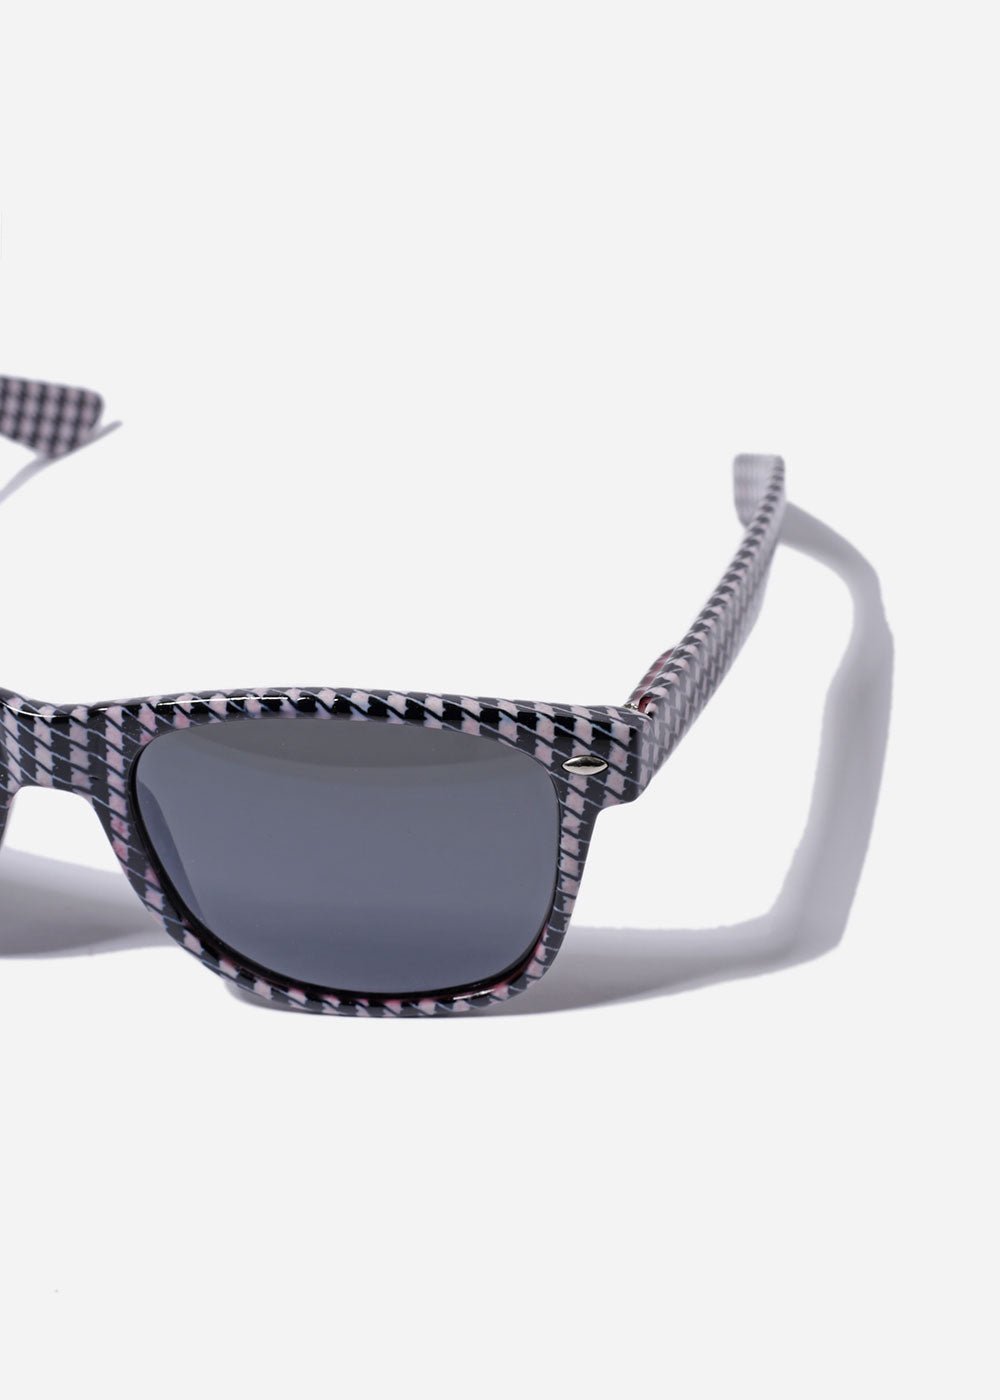 Houndstooth Print Sunglasses- Black